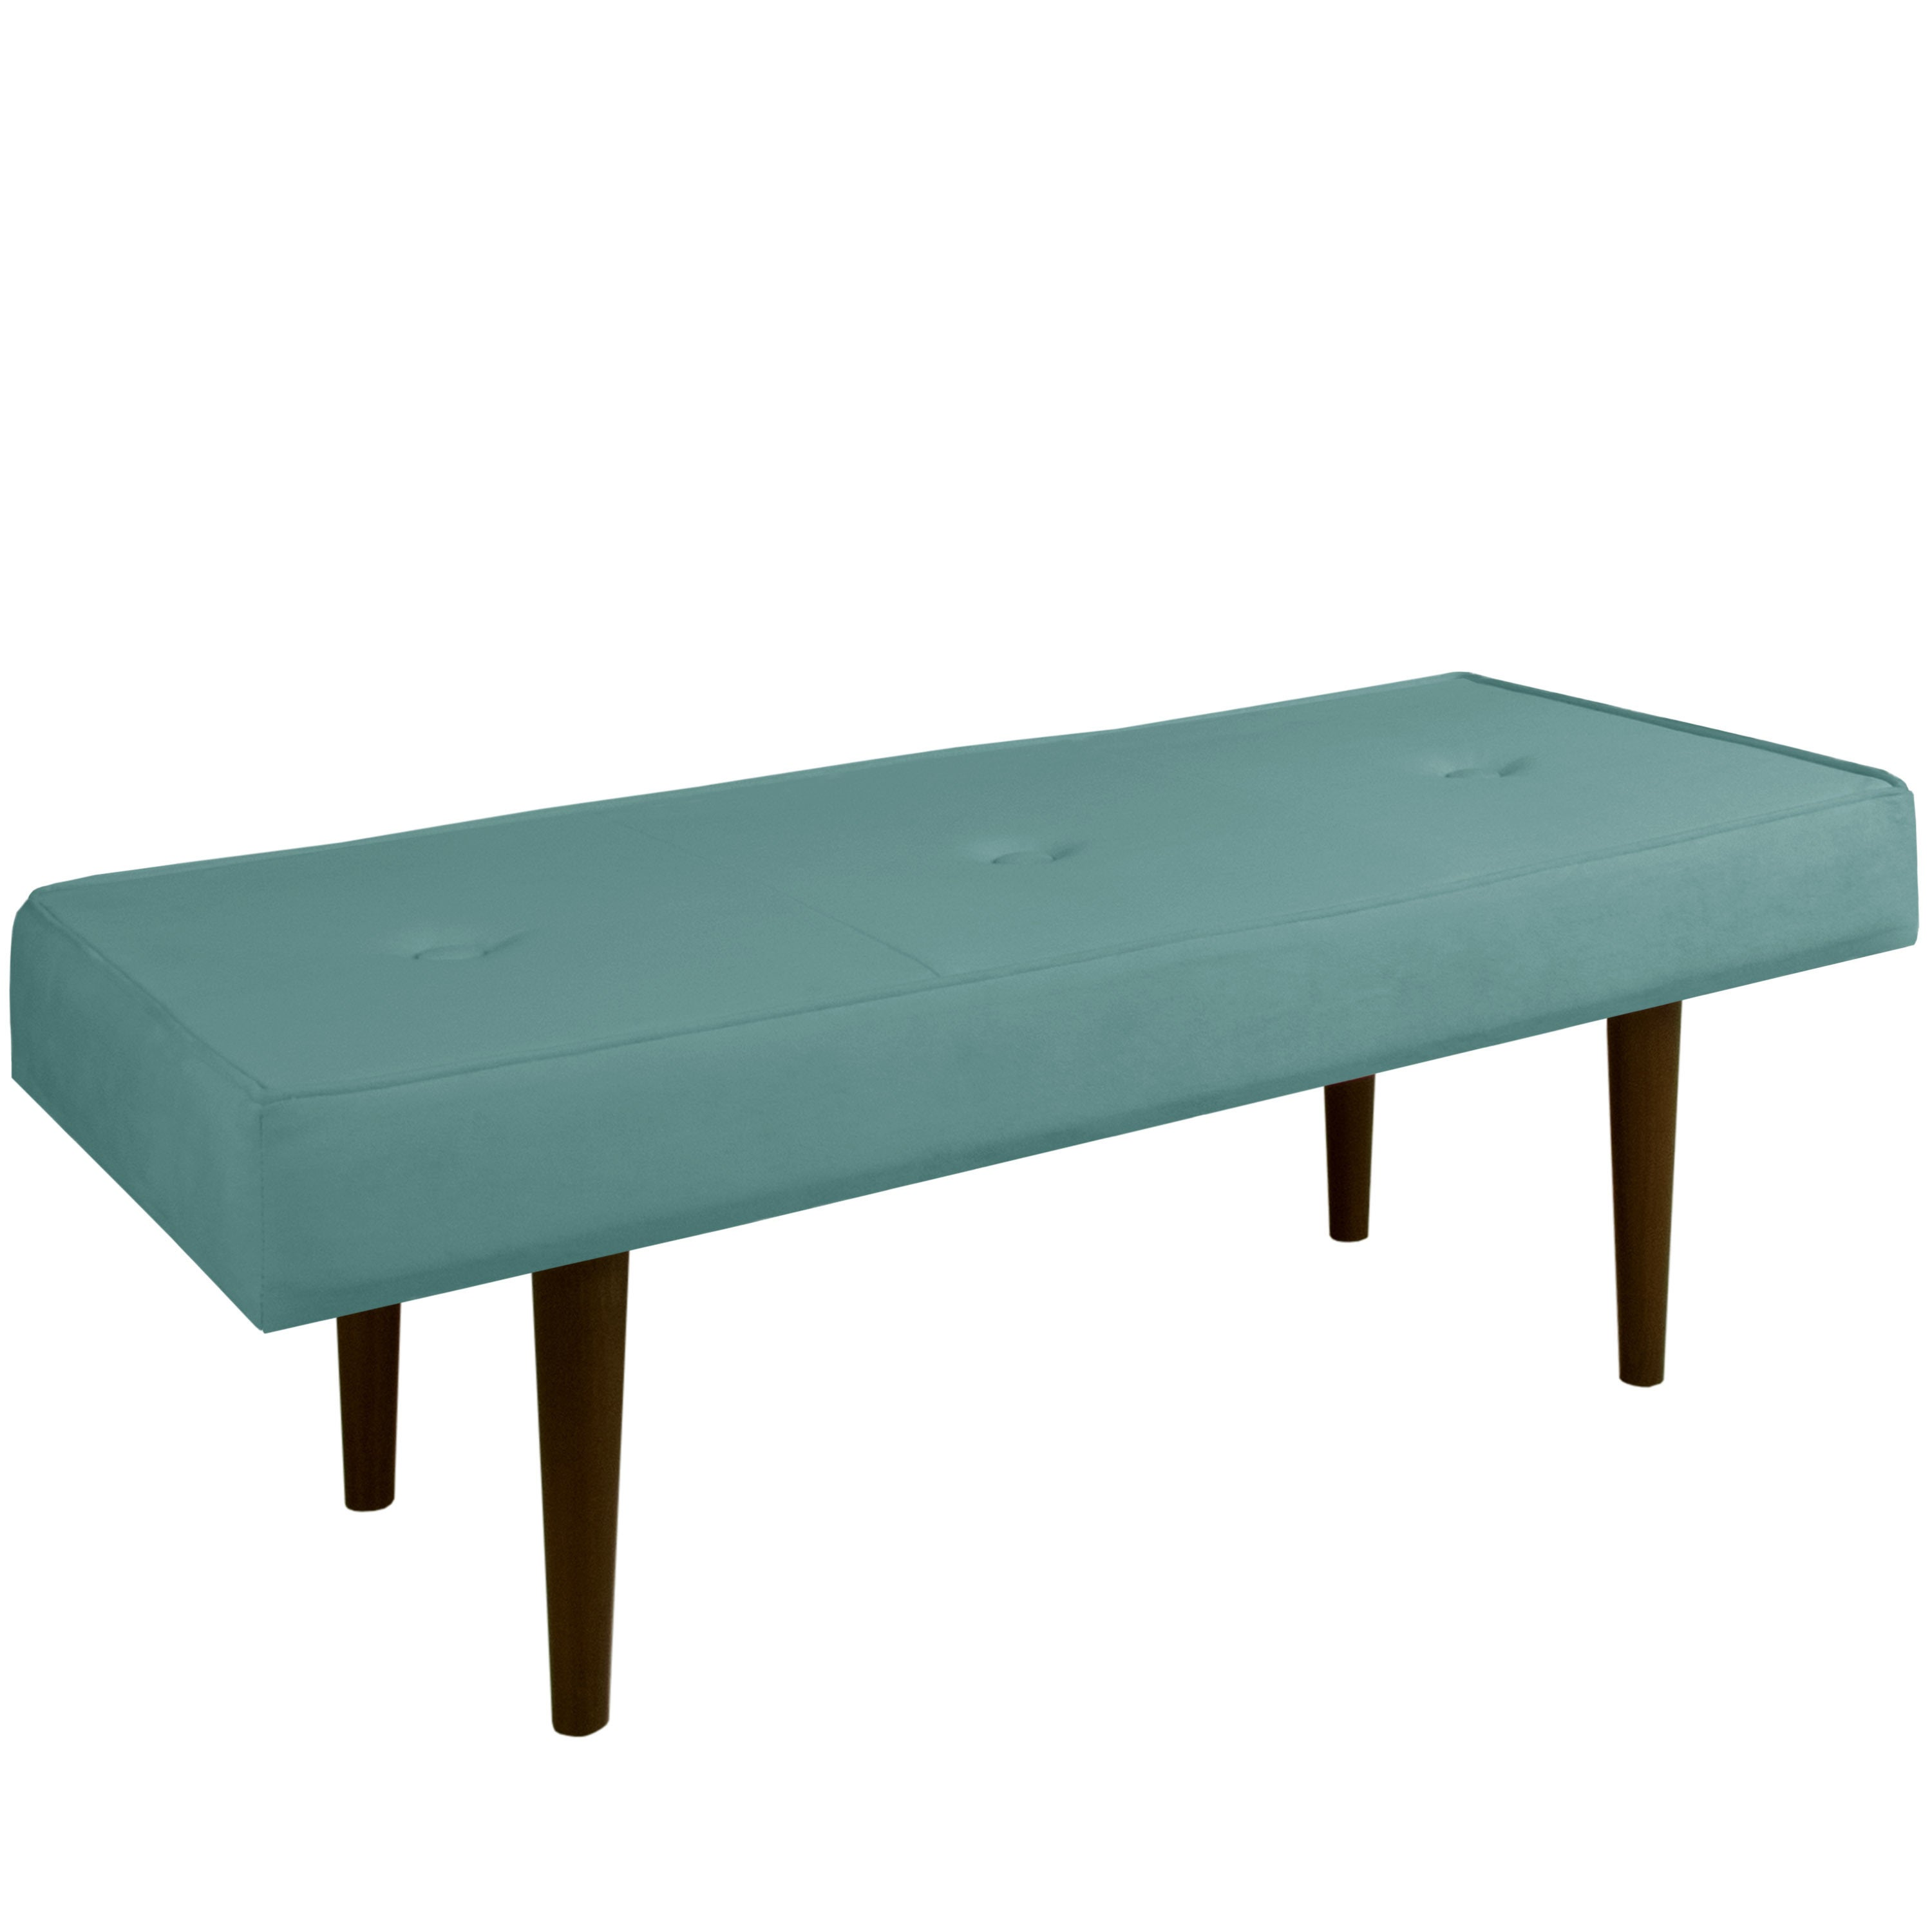 Skyline Velvet Caribbean Button-tufted Bench with Cone Le...